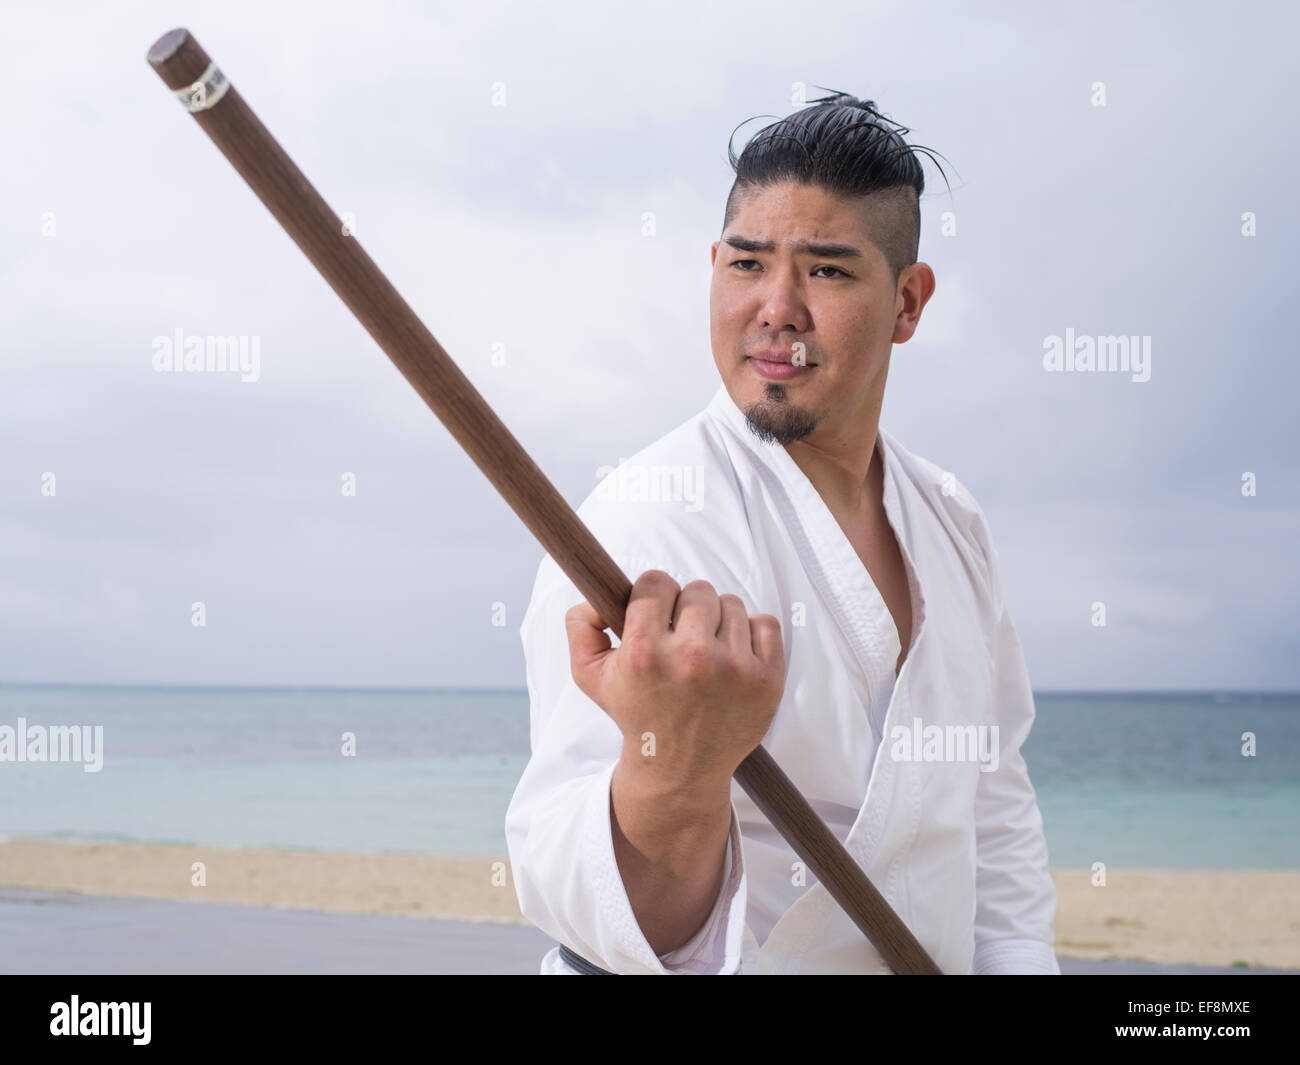 a comparison of sport karate versus traditional karate But if you are coming to japan, why not take a look at some of the traditional japanese sports as well sumo sumo is a traditional combative japanese sport that is well known throughout the world most rikishi (sumo only their hands and fists compared to other combative sports, karate is a more practical martial art.